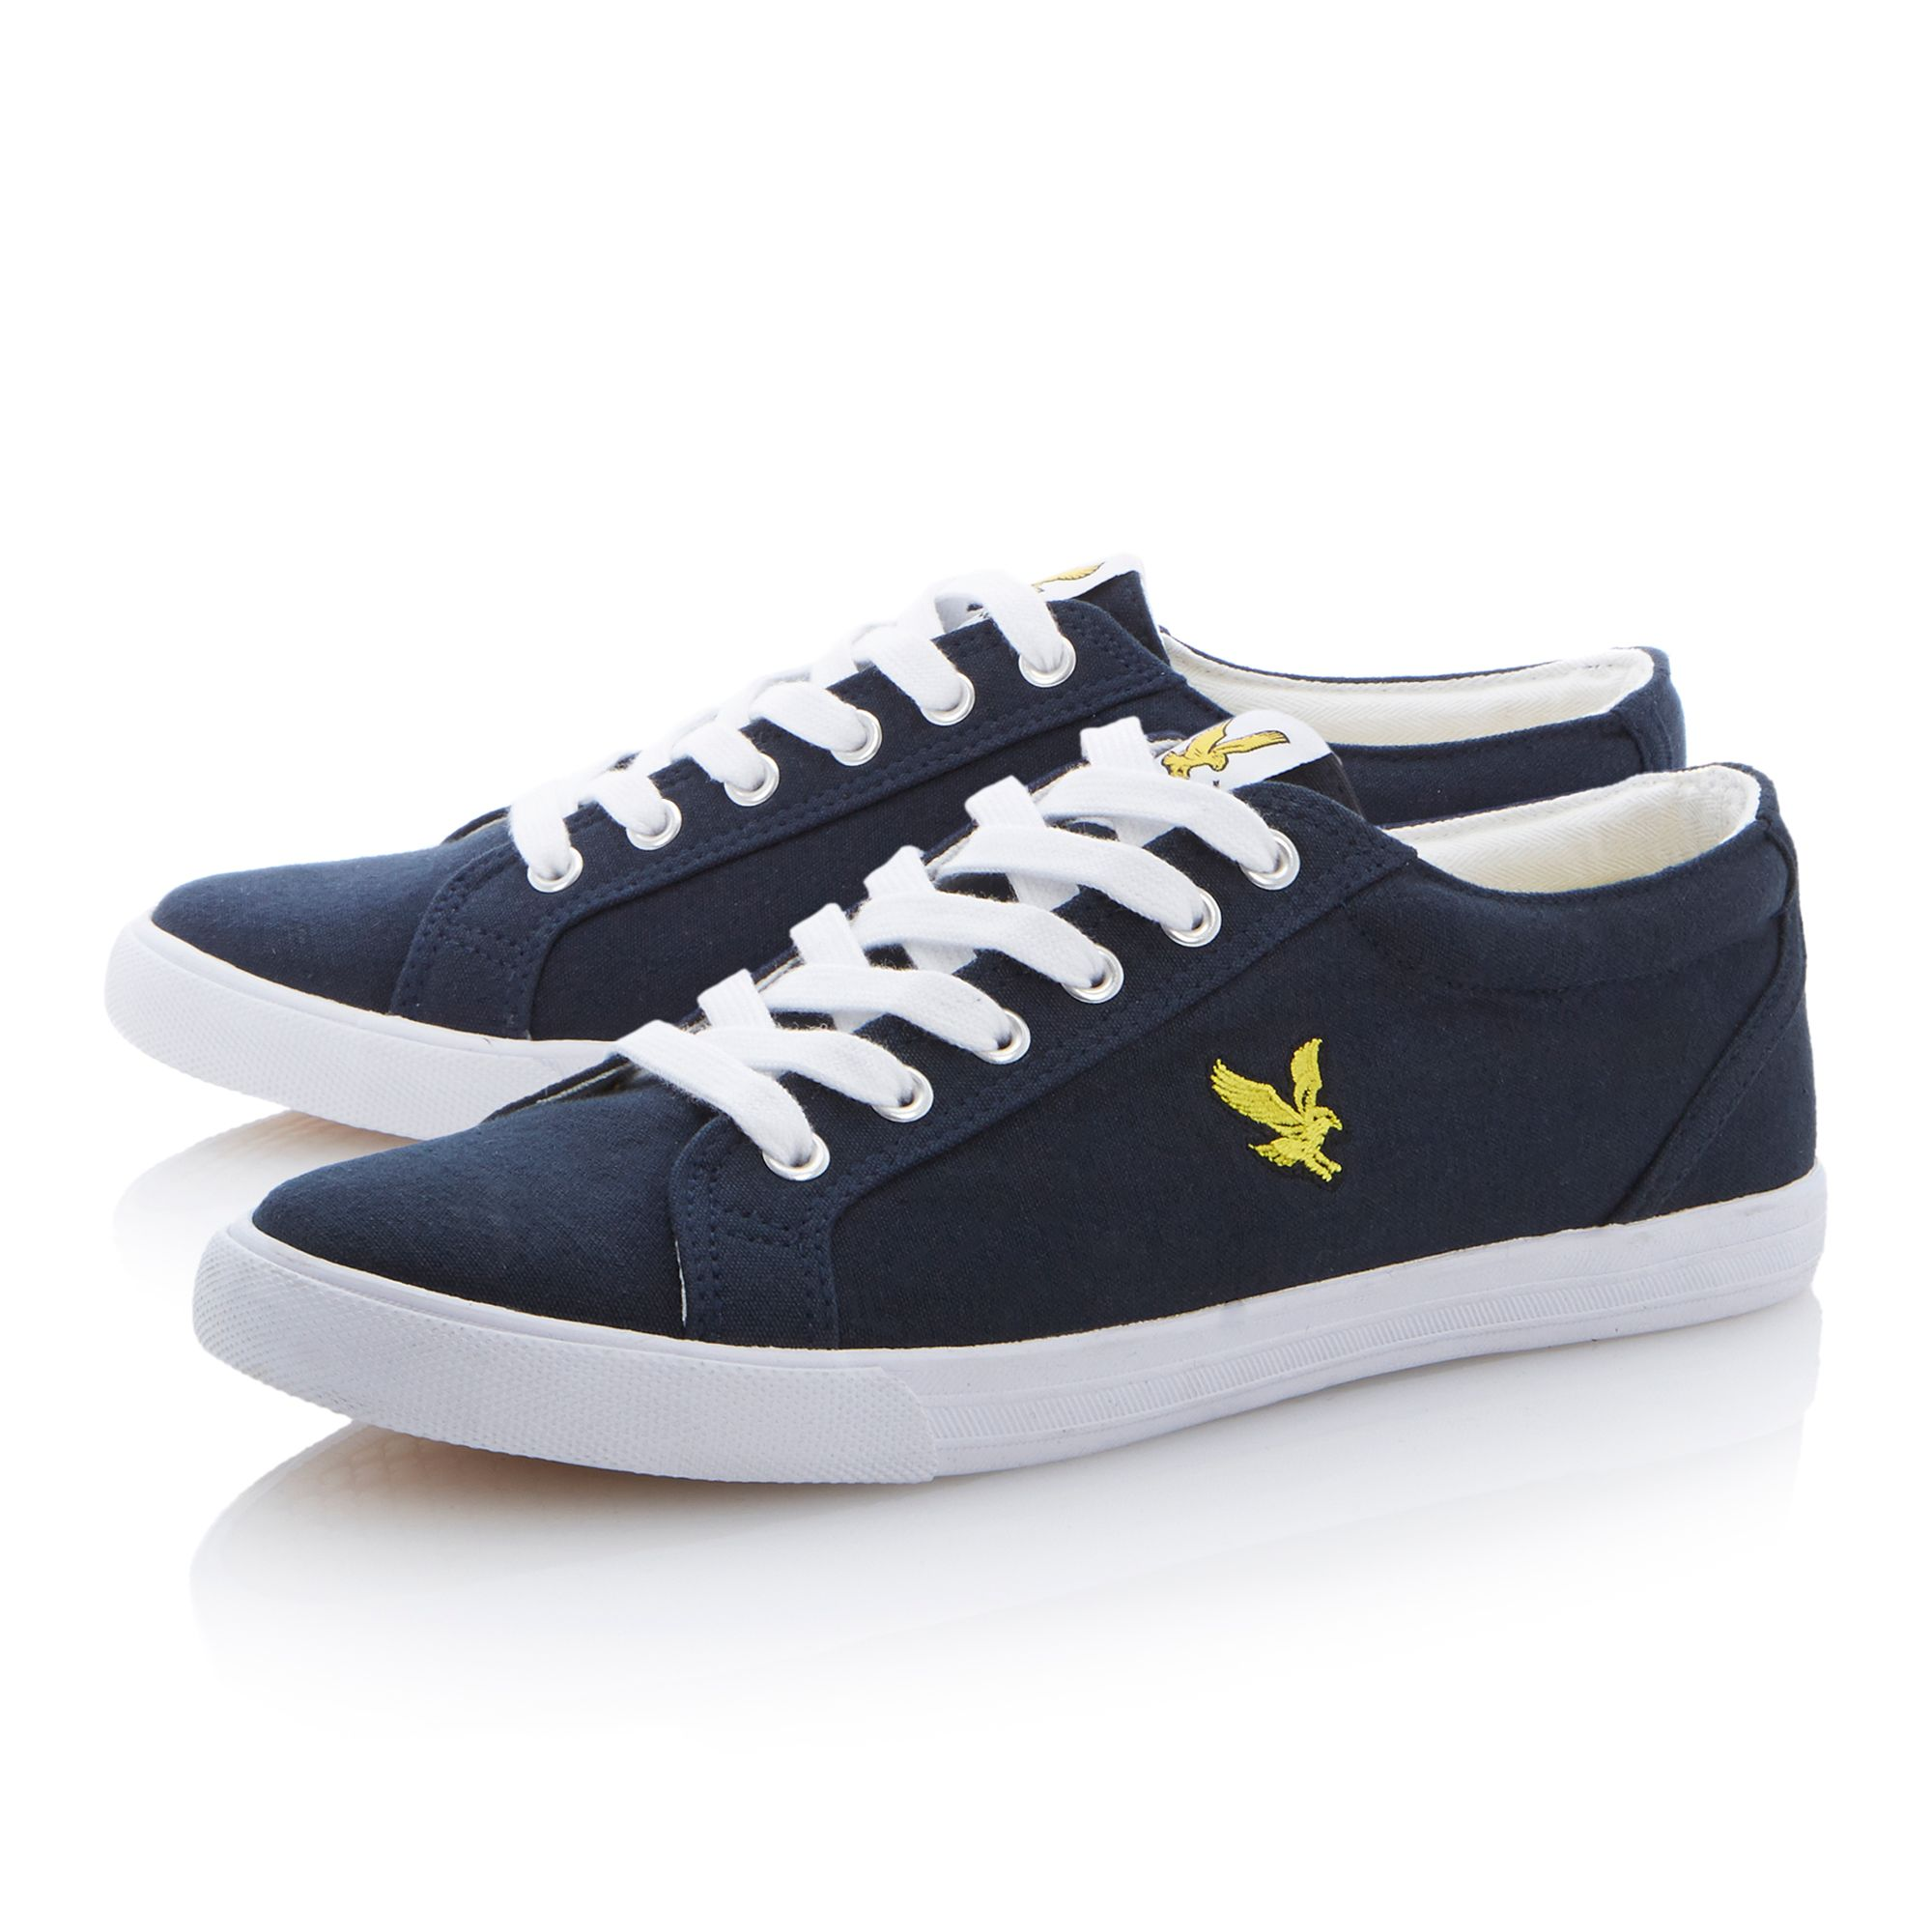 Halket canvas lace up plimsolls